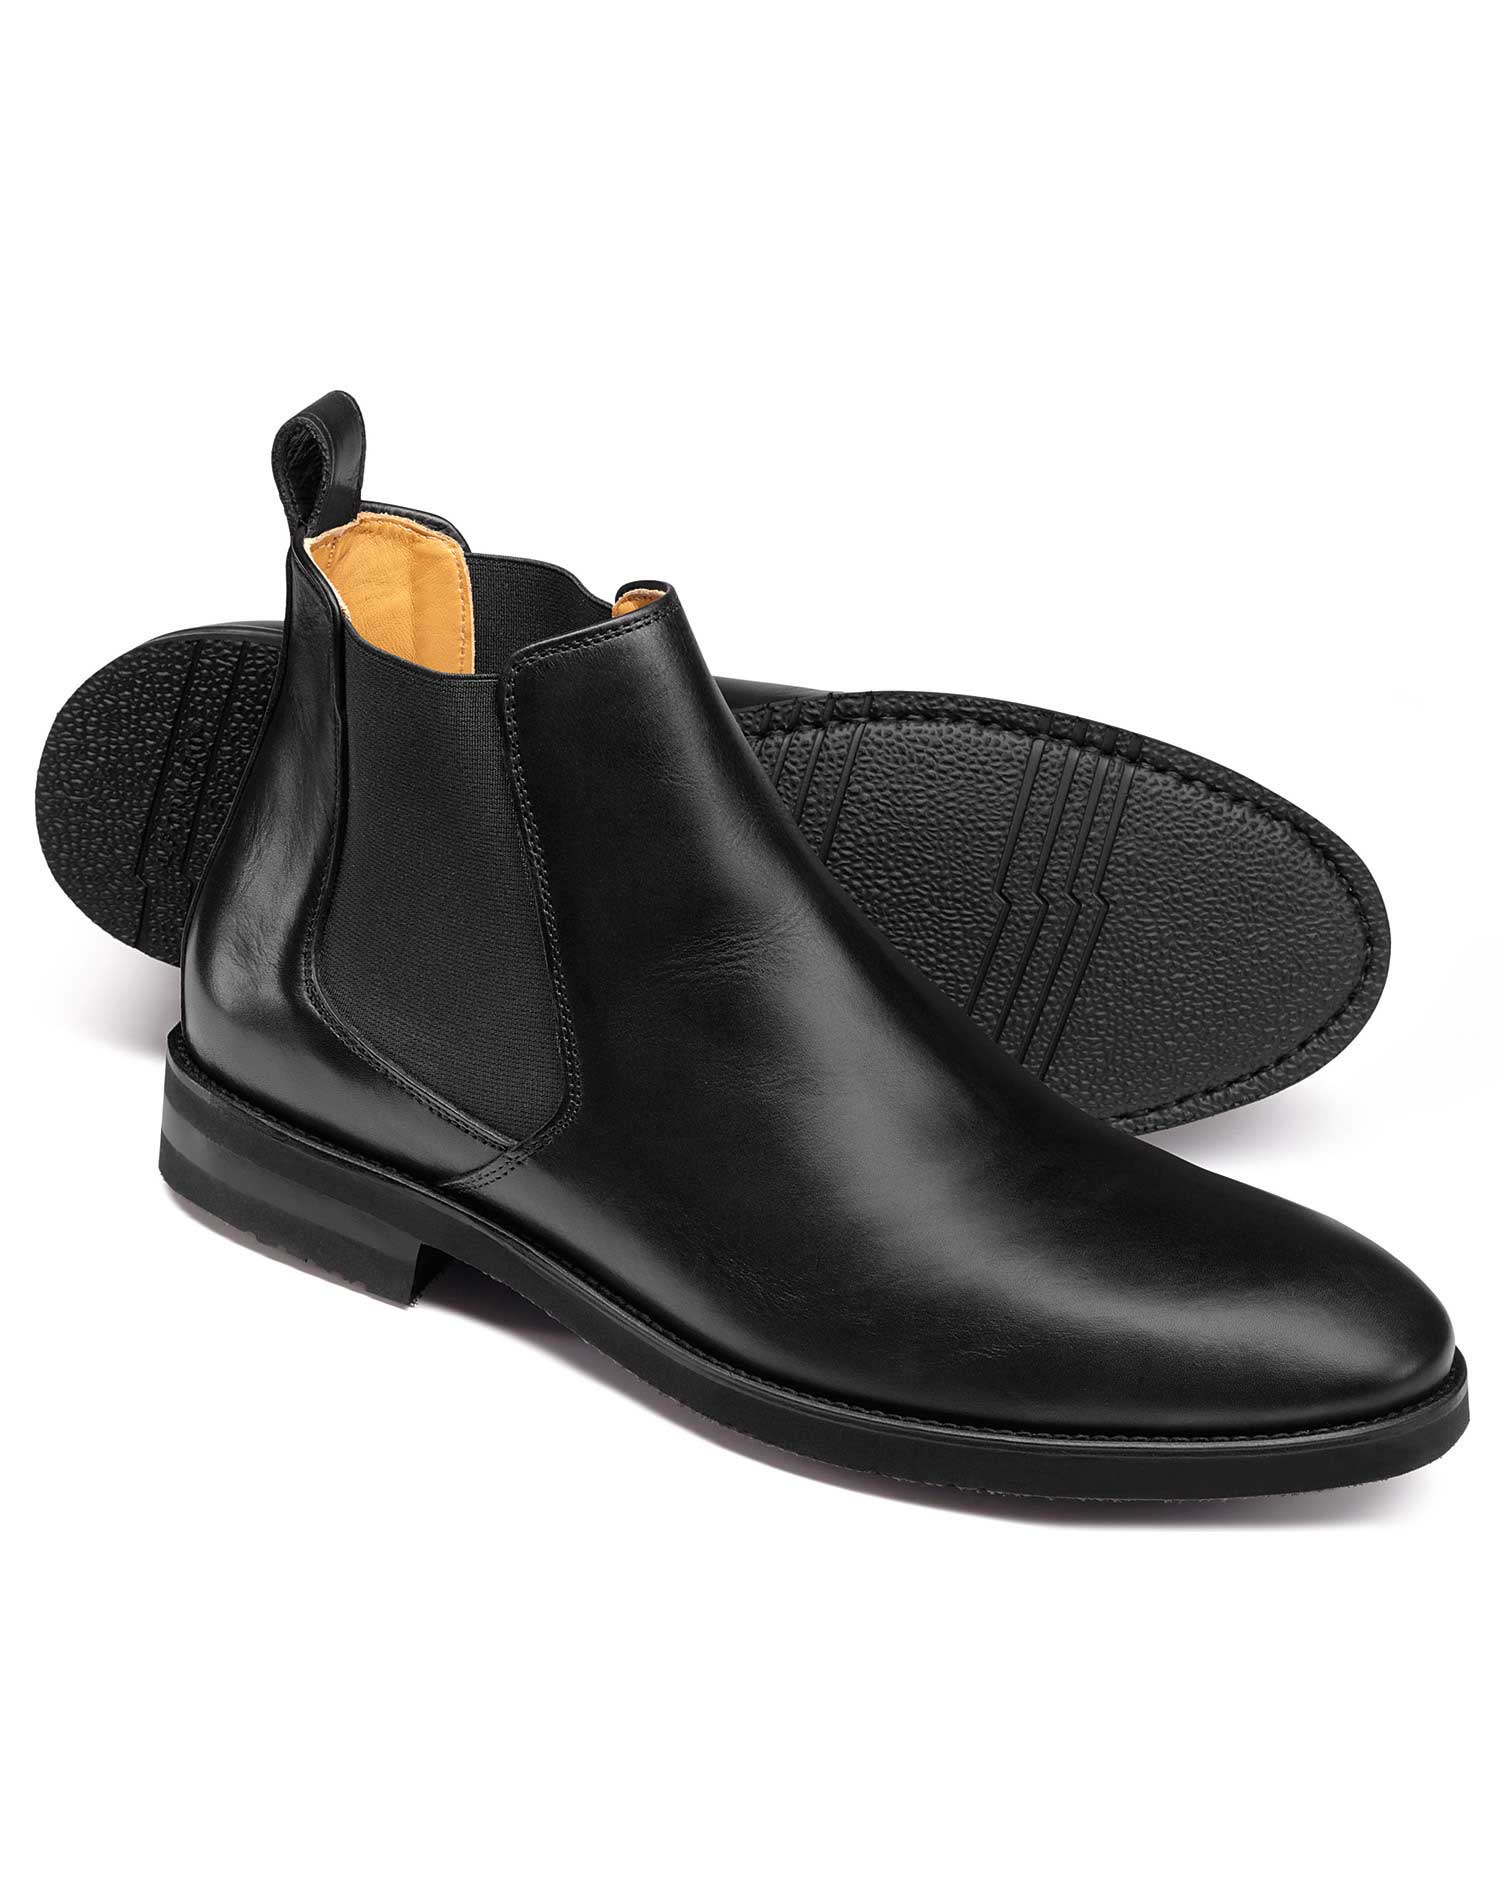 Black Extra Lightweight Chelsea Boots Size 9 R by Charles Tyrwhitt